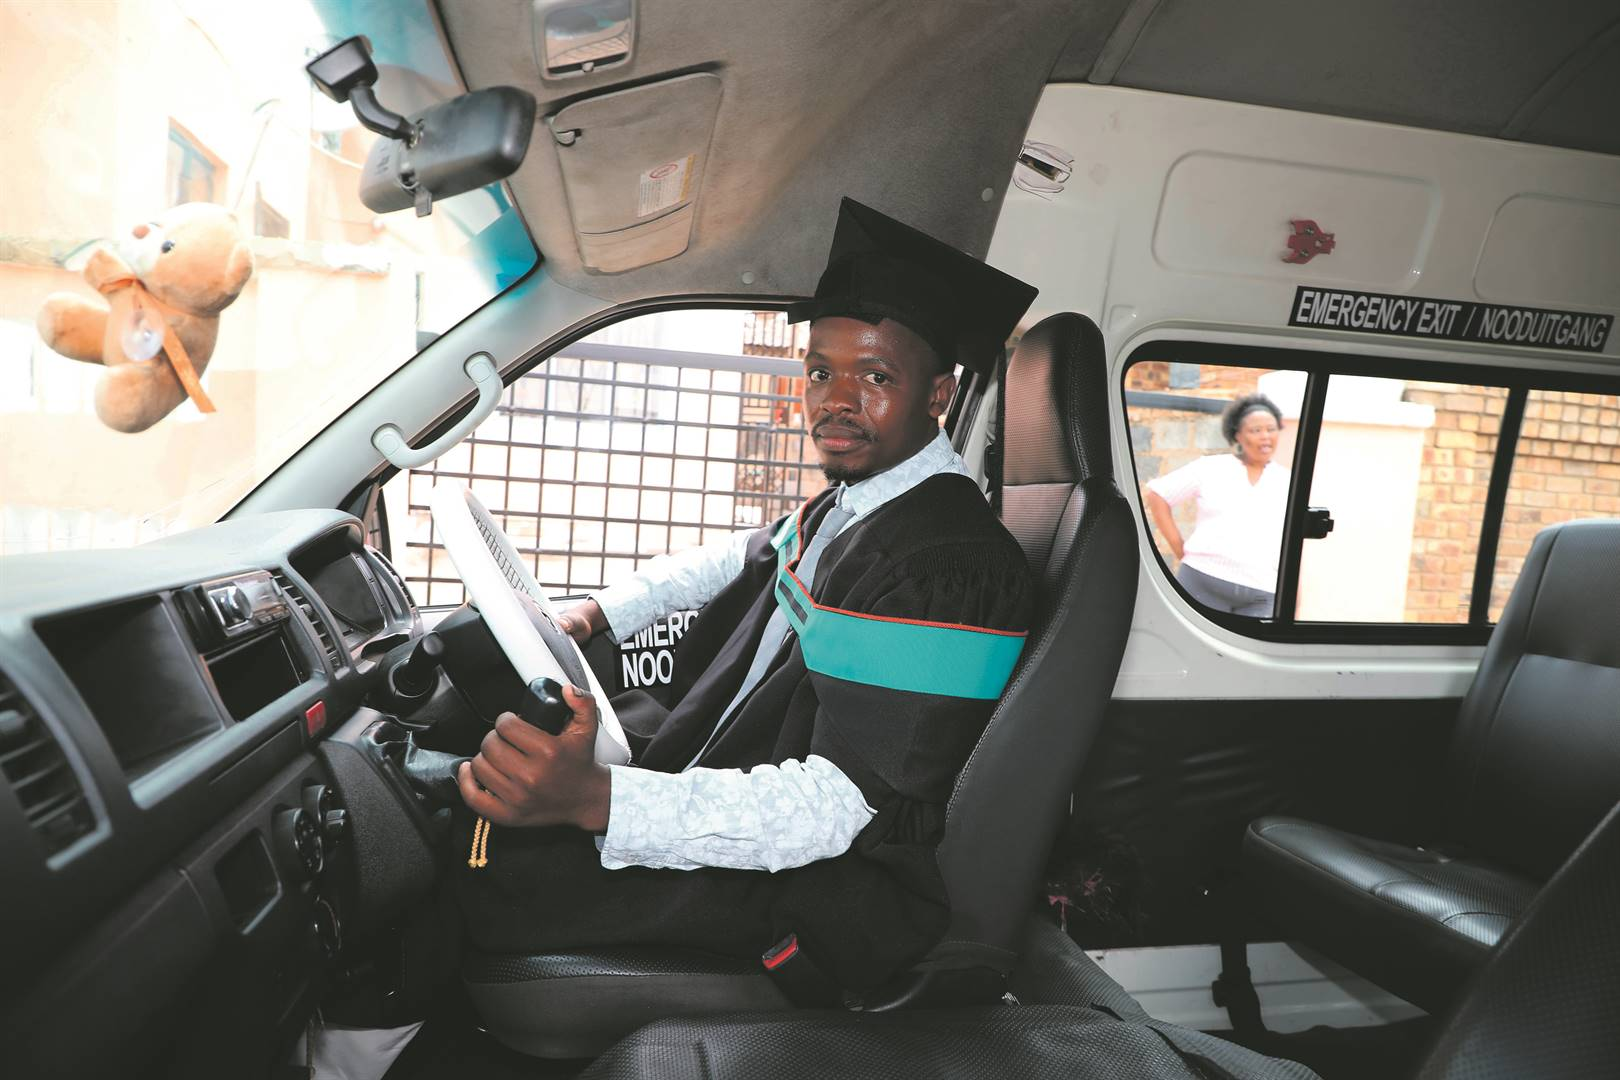 Nkazimulo Khumalo from Ivory Park in Tembisa paid for his bachelor of education degree with Unisa by working hard as a taxi driver. Picture: Antonio Muchave / Sowetan